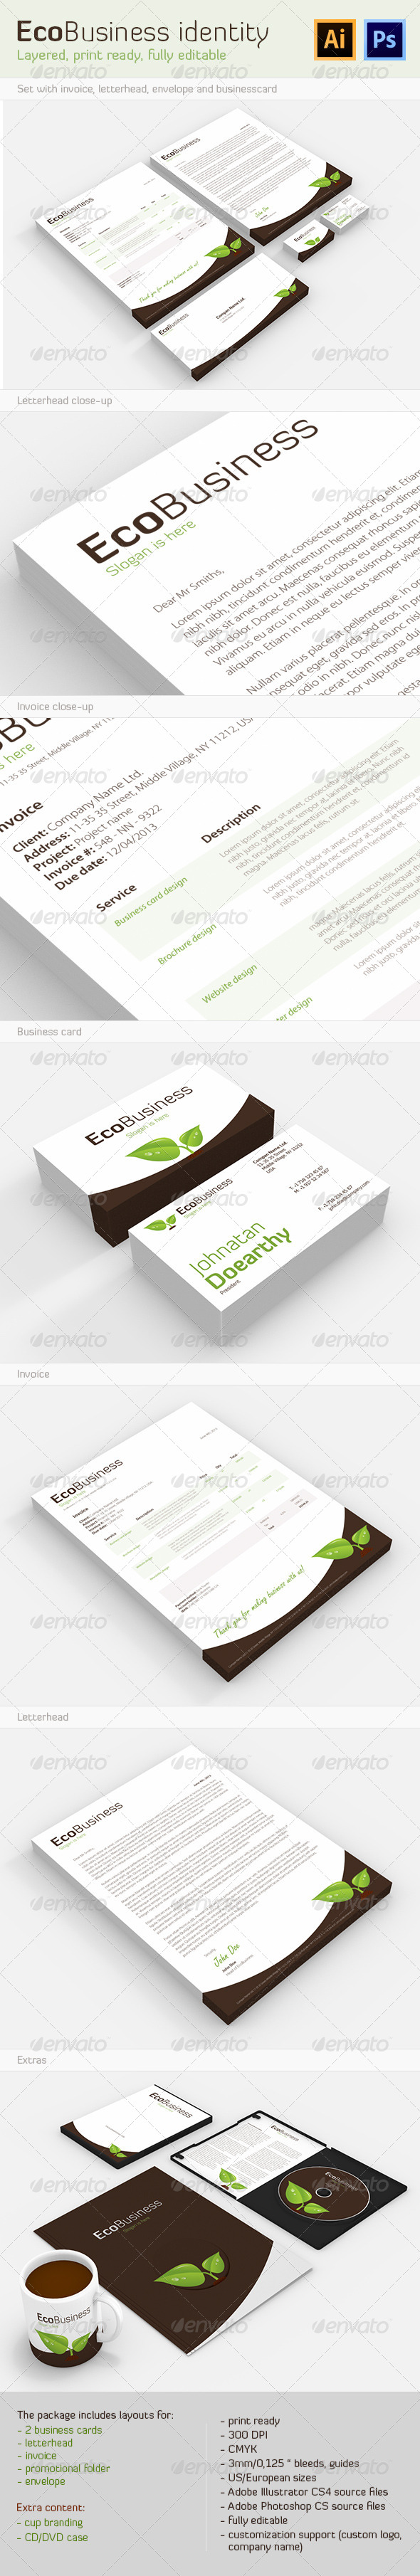 EcoBusiness Corporate Identity - Stationery Print Templates